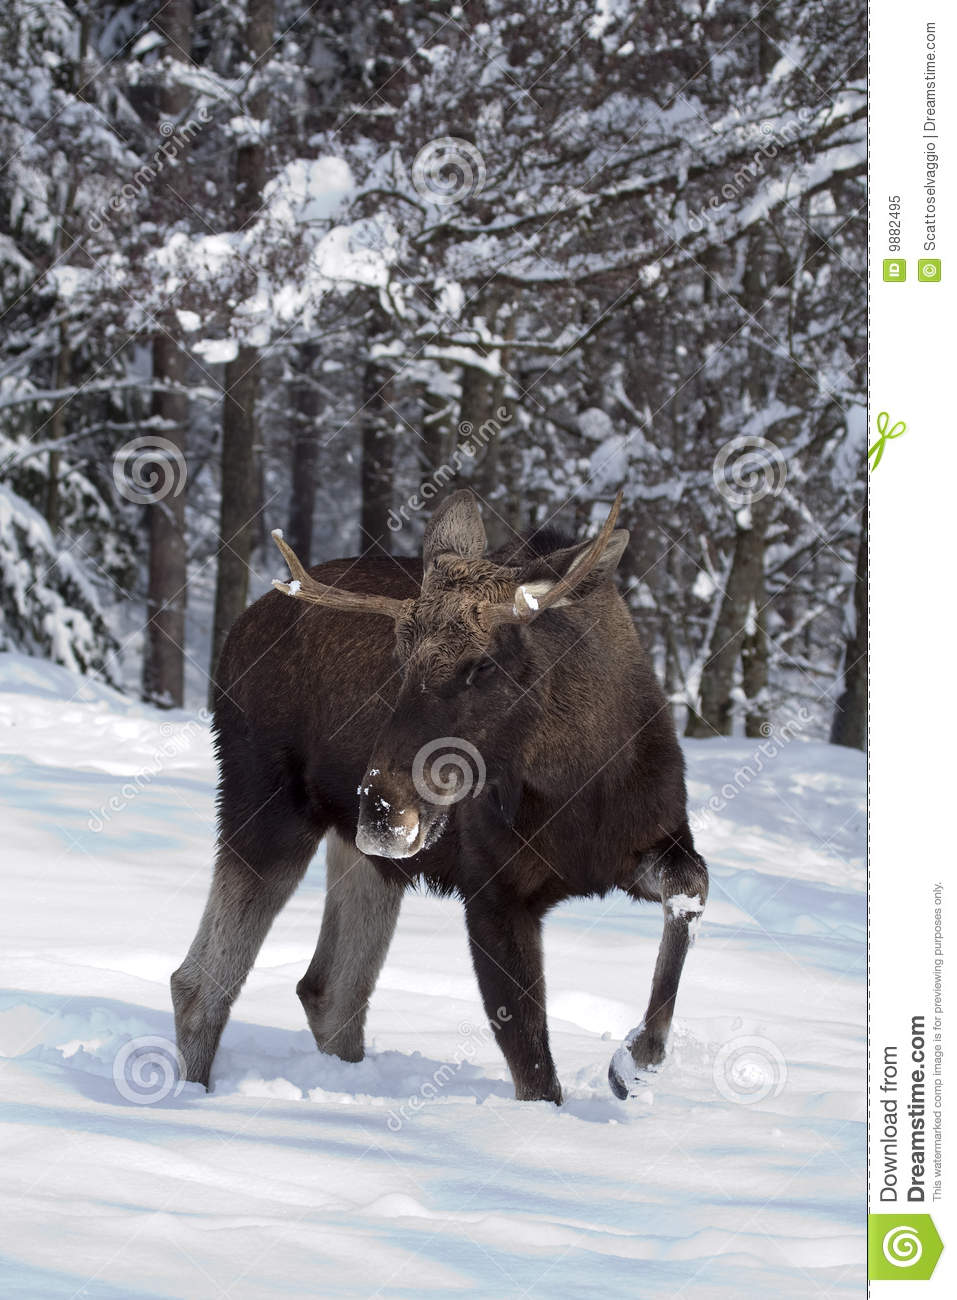 European moose (elk) in the snow